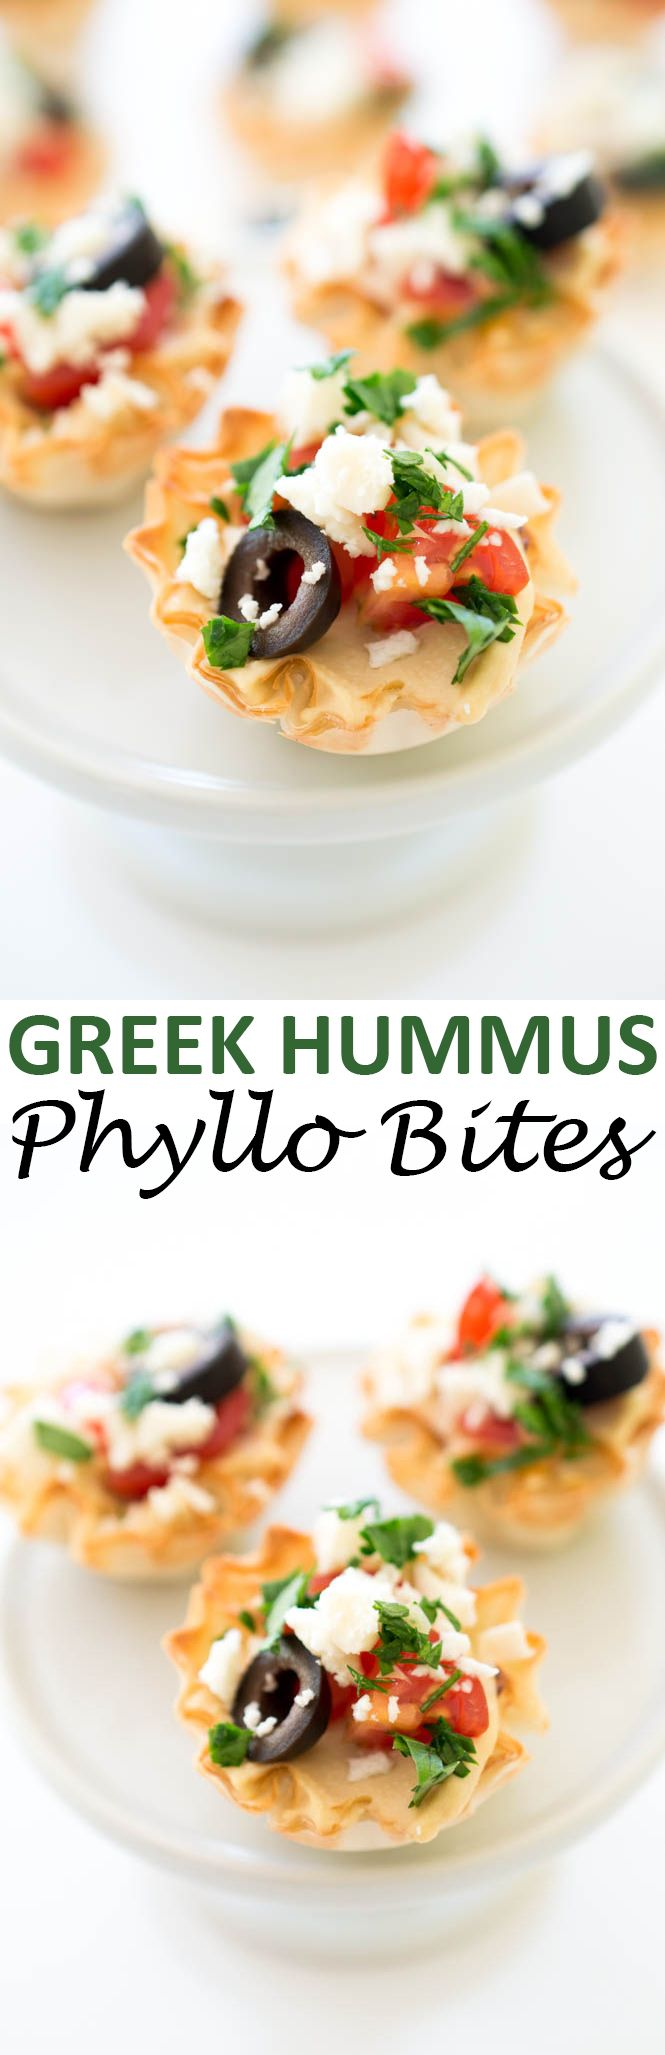 These Greek Hummus Phyllo Bites are no bake and take less than 10 minutes to…